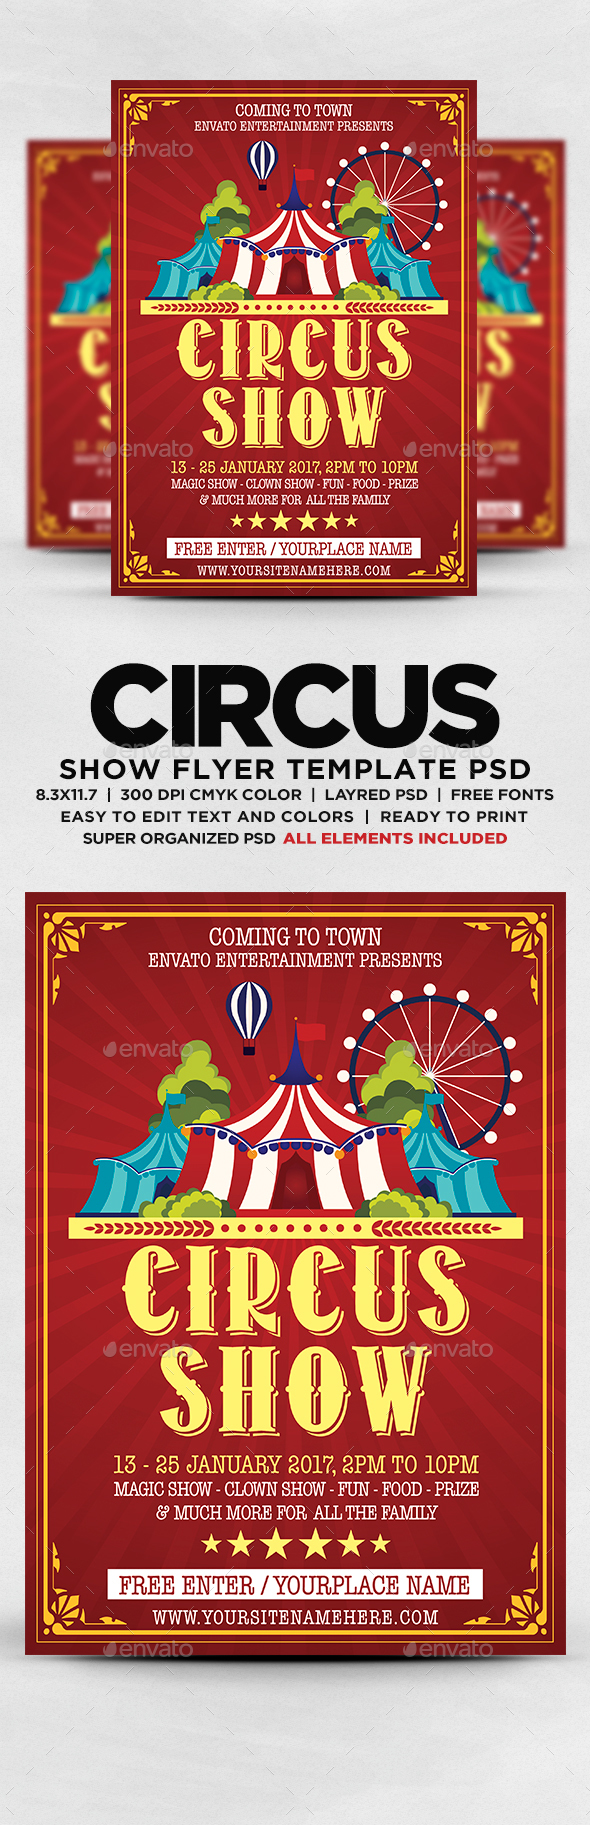 Circus Show Flyer Template Psd Flyer Templates Pinterest Flyer